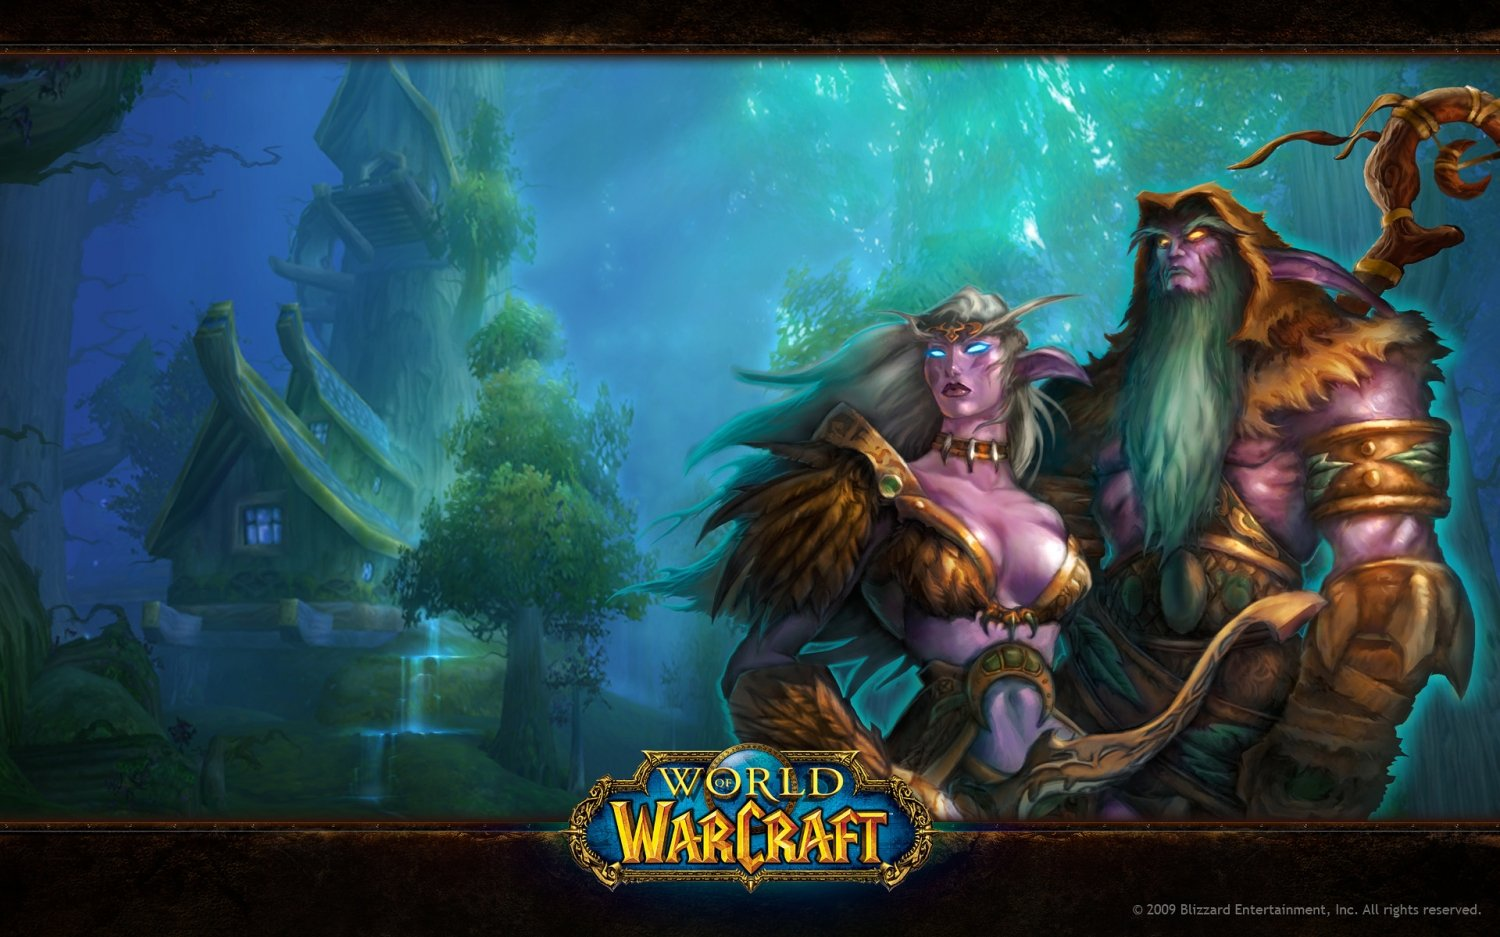 Worlds of Warcraft collide: Blizzard plans huge merger of WoW servers